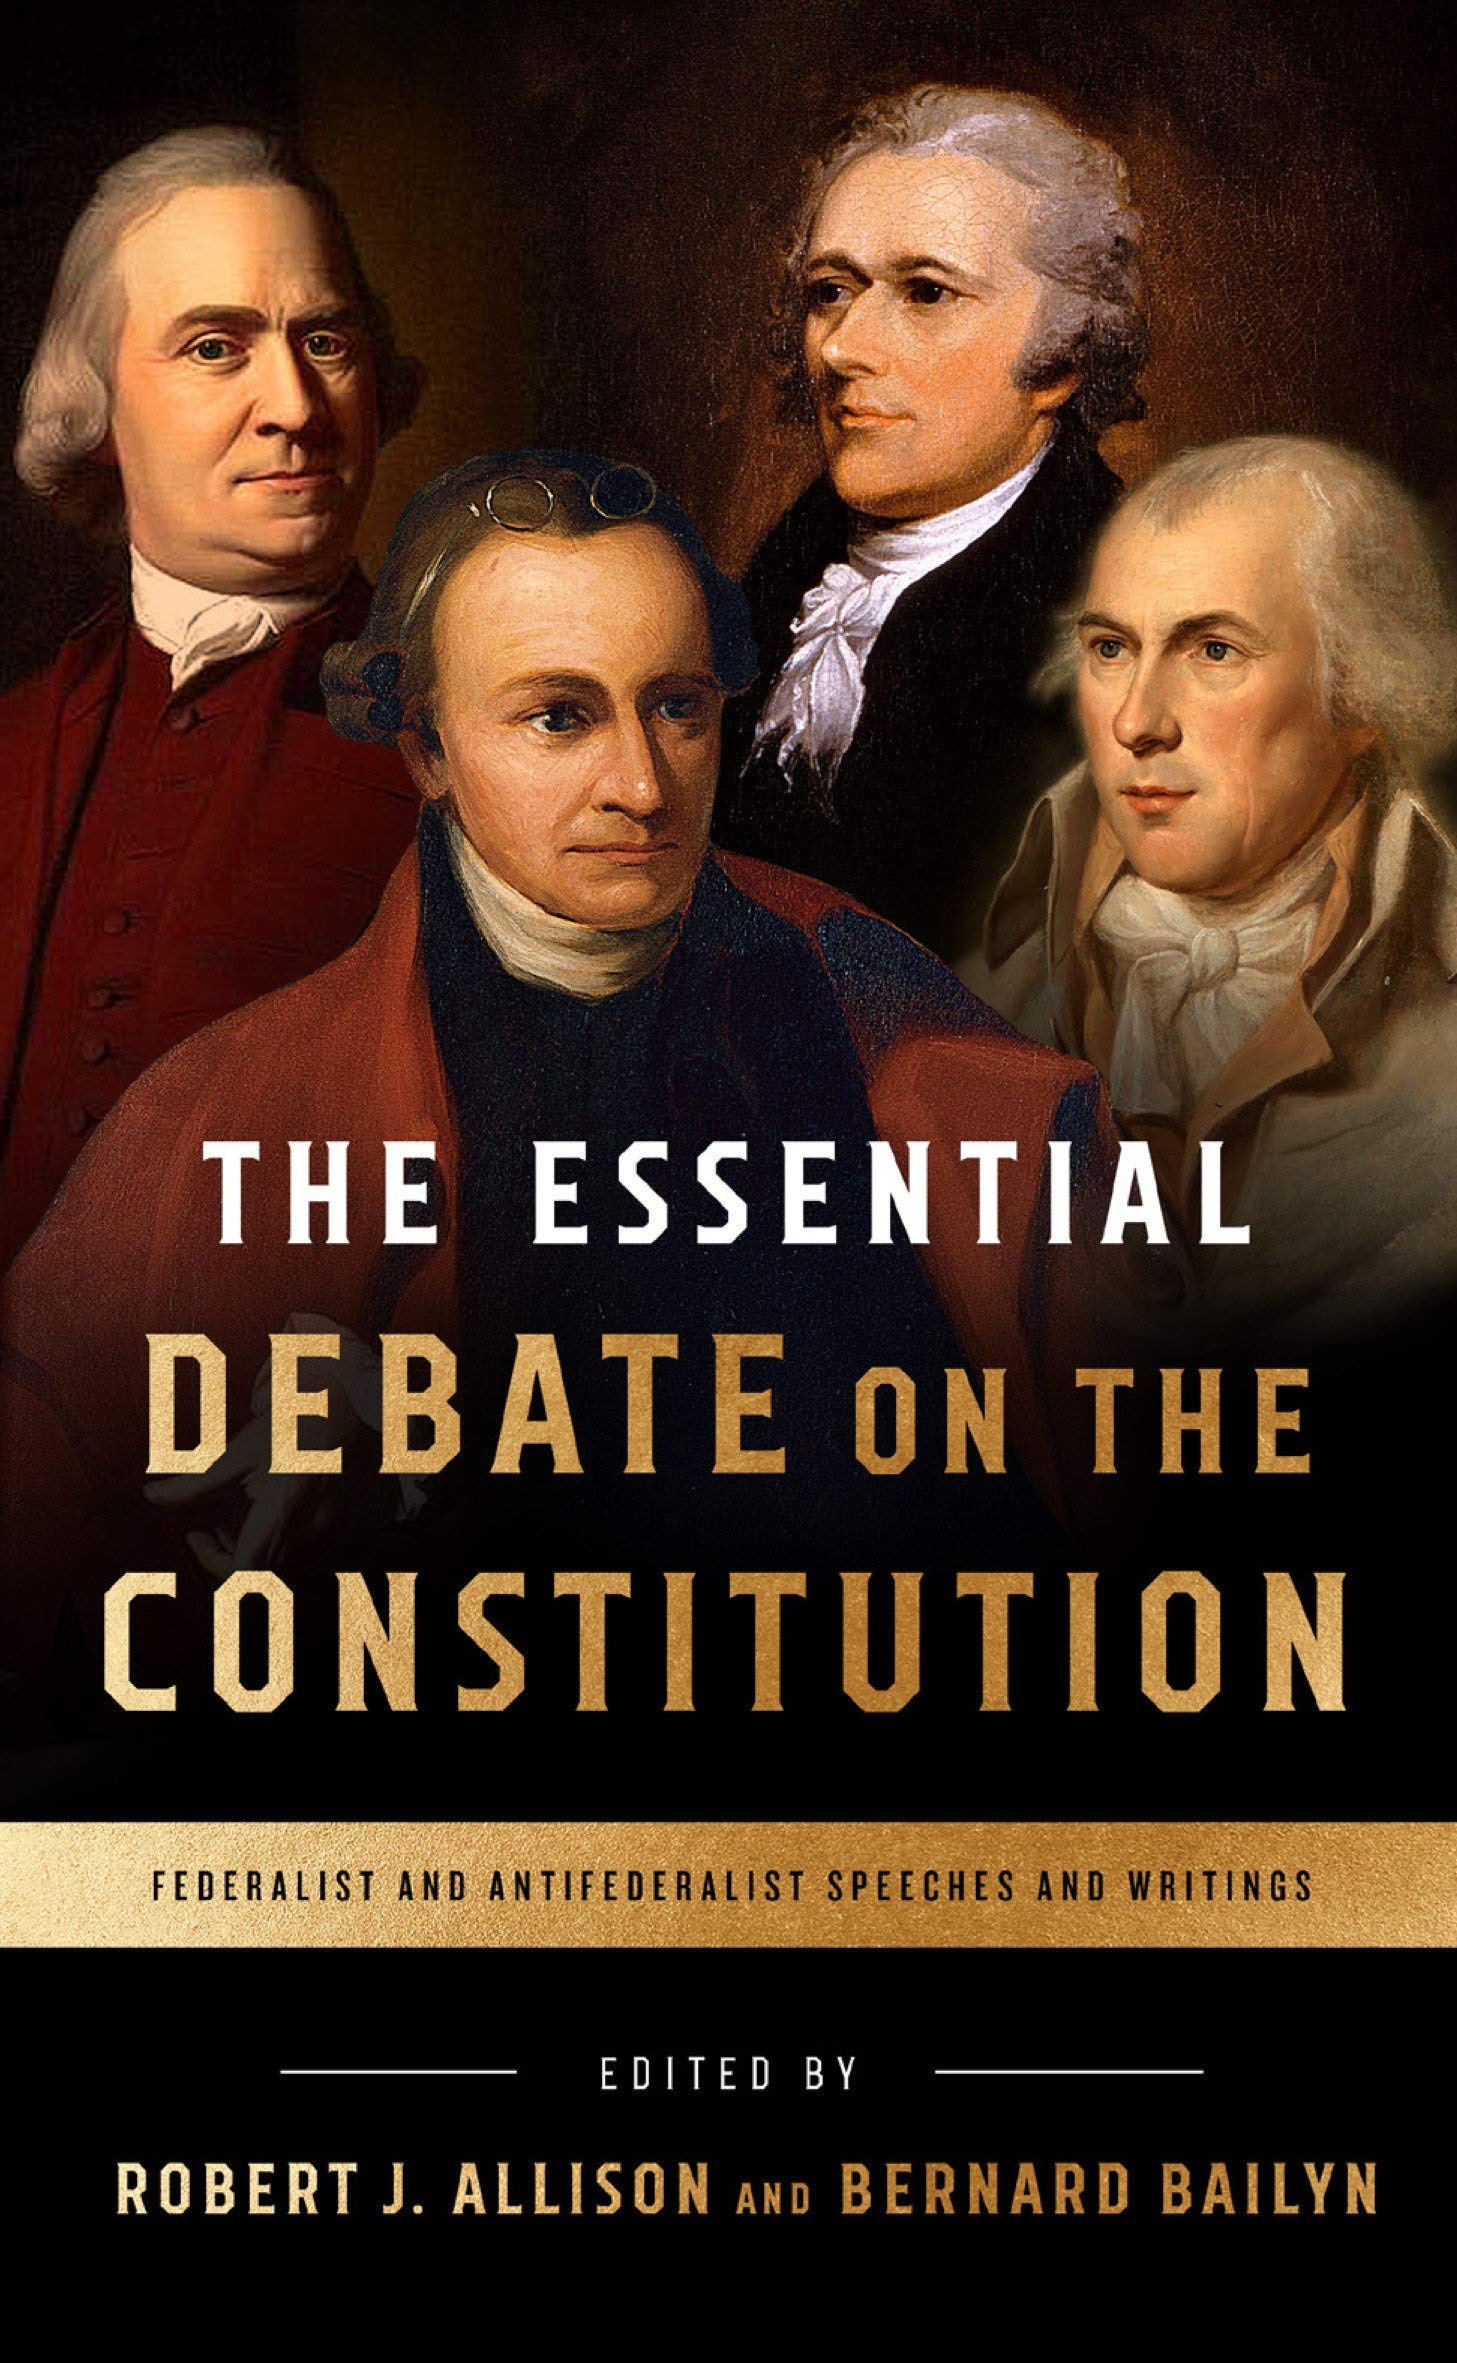 The Essential Debate on the Constitution: Federalist and Antifederalist Speeches and Writings (Inglese) Copertina flessibile – 9 ott 2018 Robert J. Allison Bernard Bailyn Library of America 1598535838